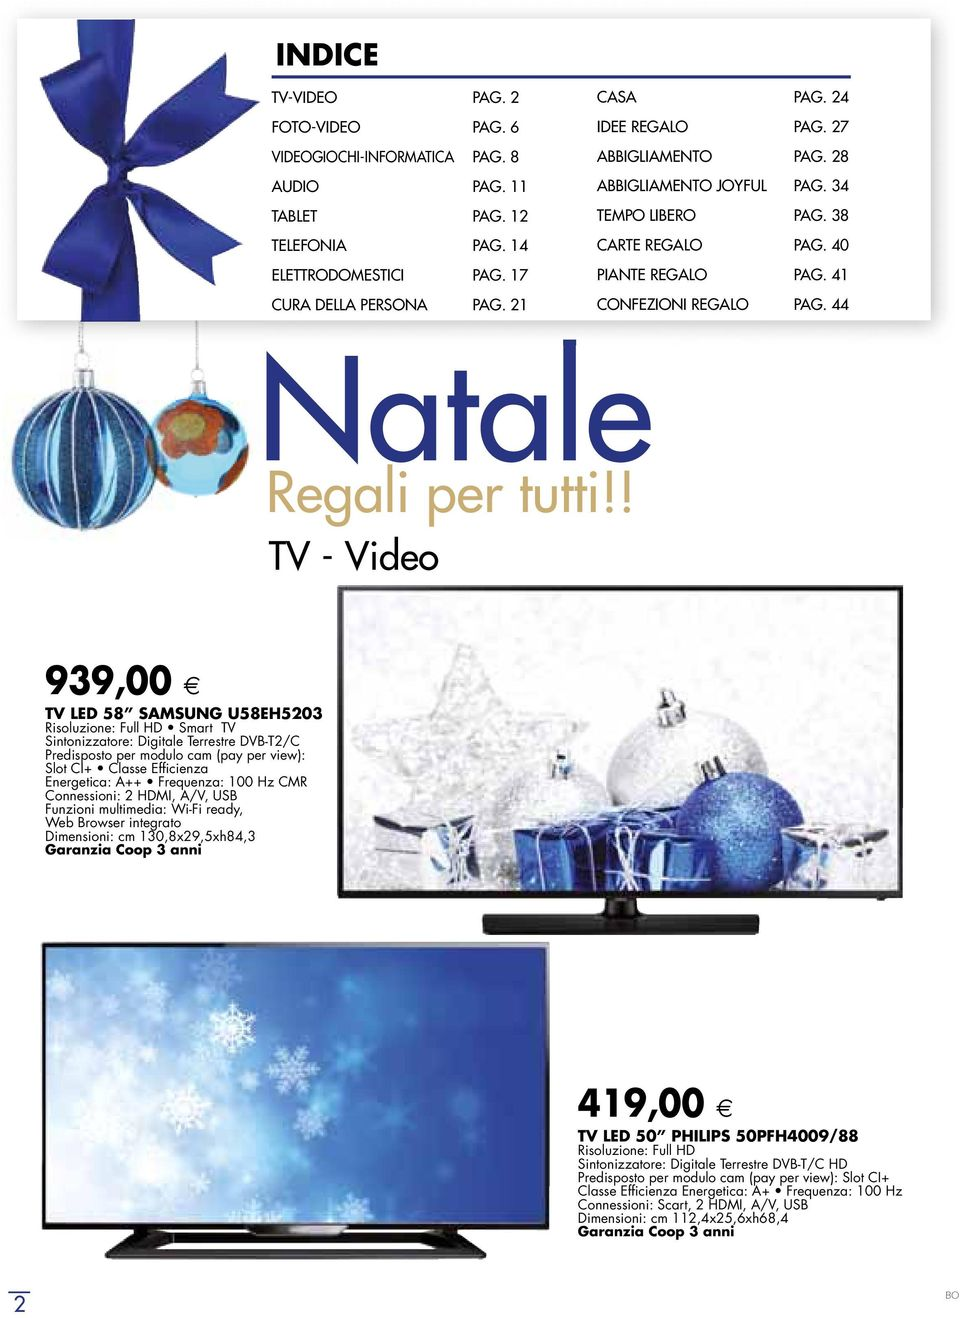 ! TV - Video 939, 00 TV LED 58 SAMSUNG U58EH5203 Risoluzione: Full HD Smart TV Sintonizzatore: Digitale Terrestre DVB-T2/C Predisposto per modulo cam (pay per view): Slot CI+ Classe Efficienza